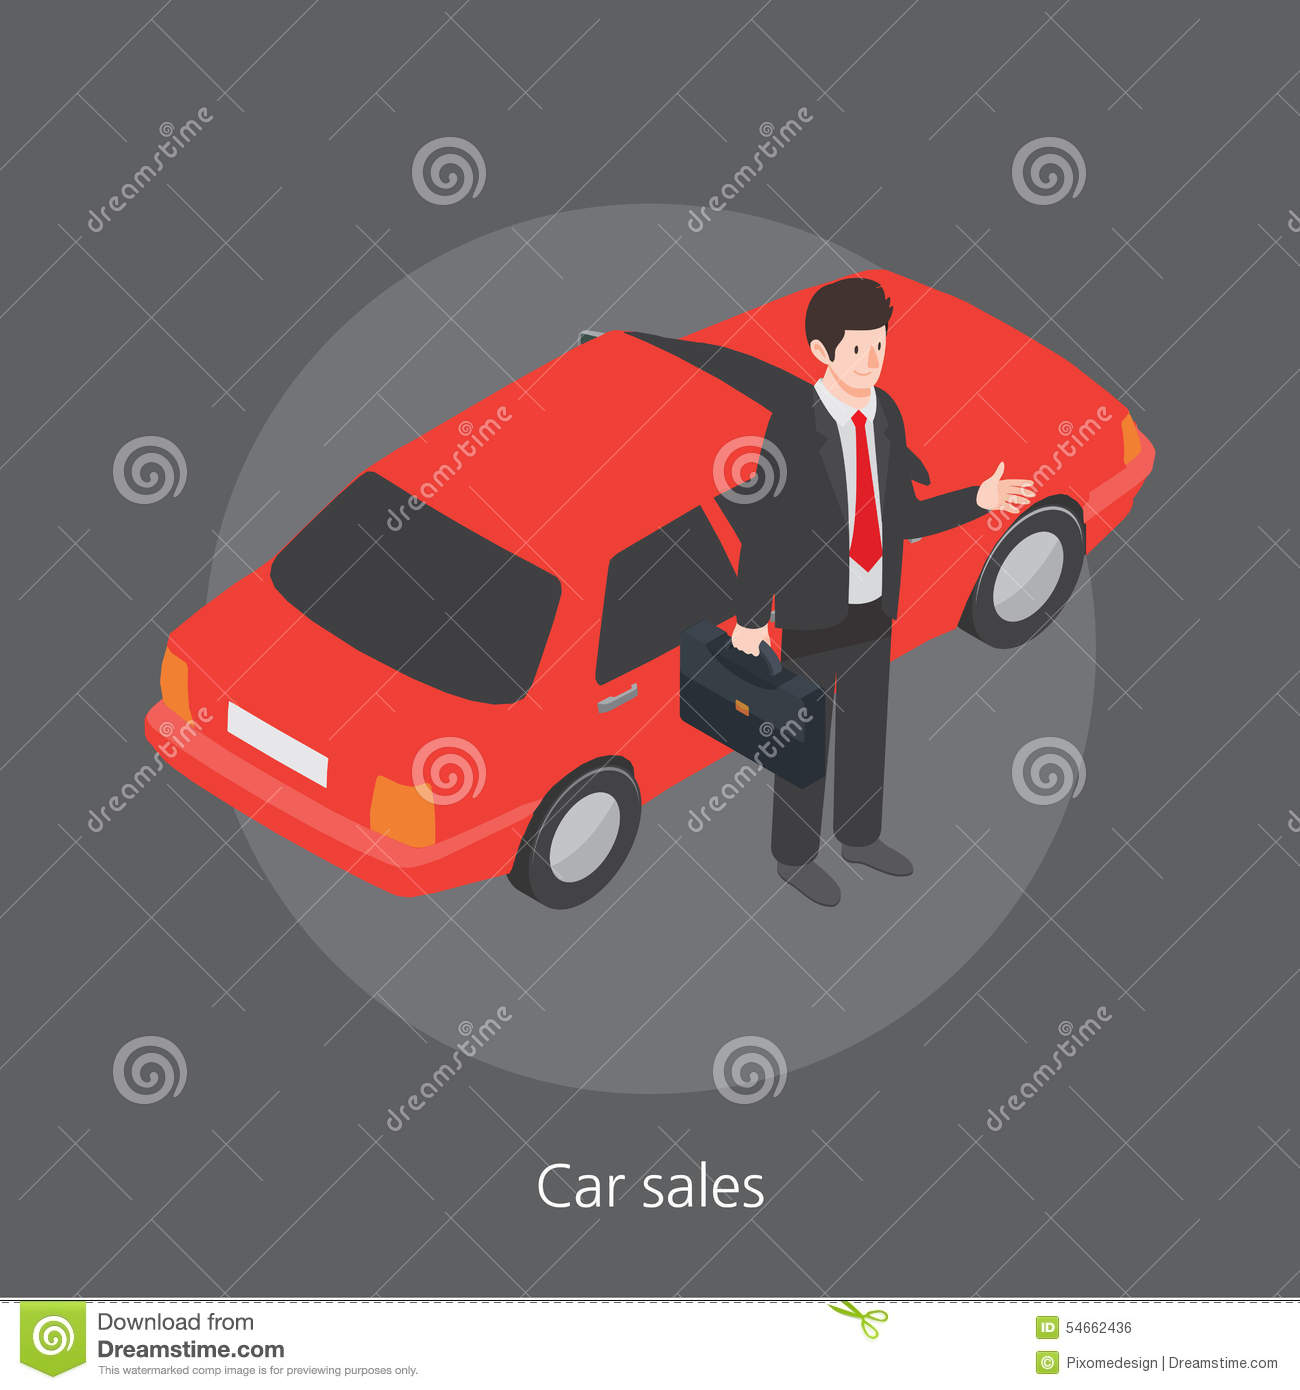 Car Sales Concept Design 3d Isometric Illustration Stock